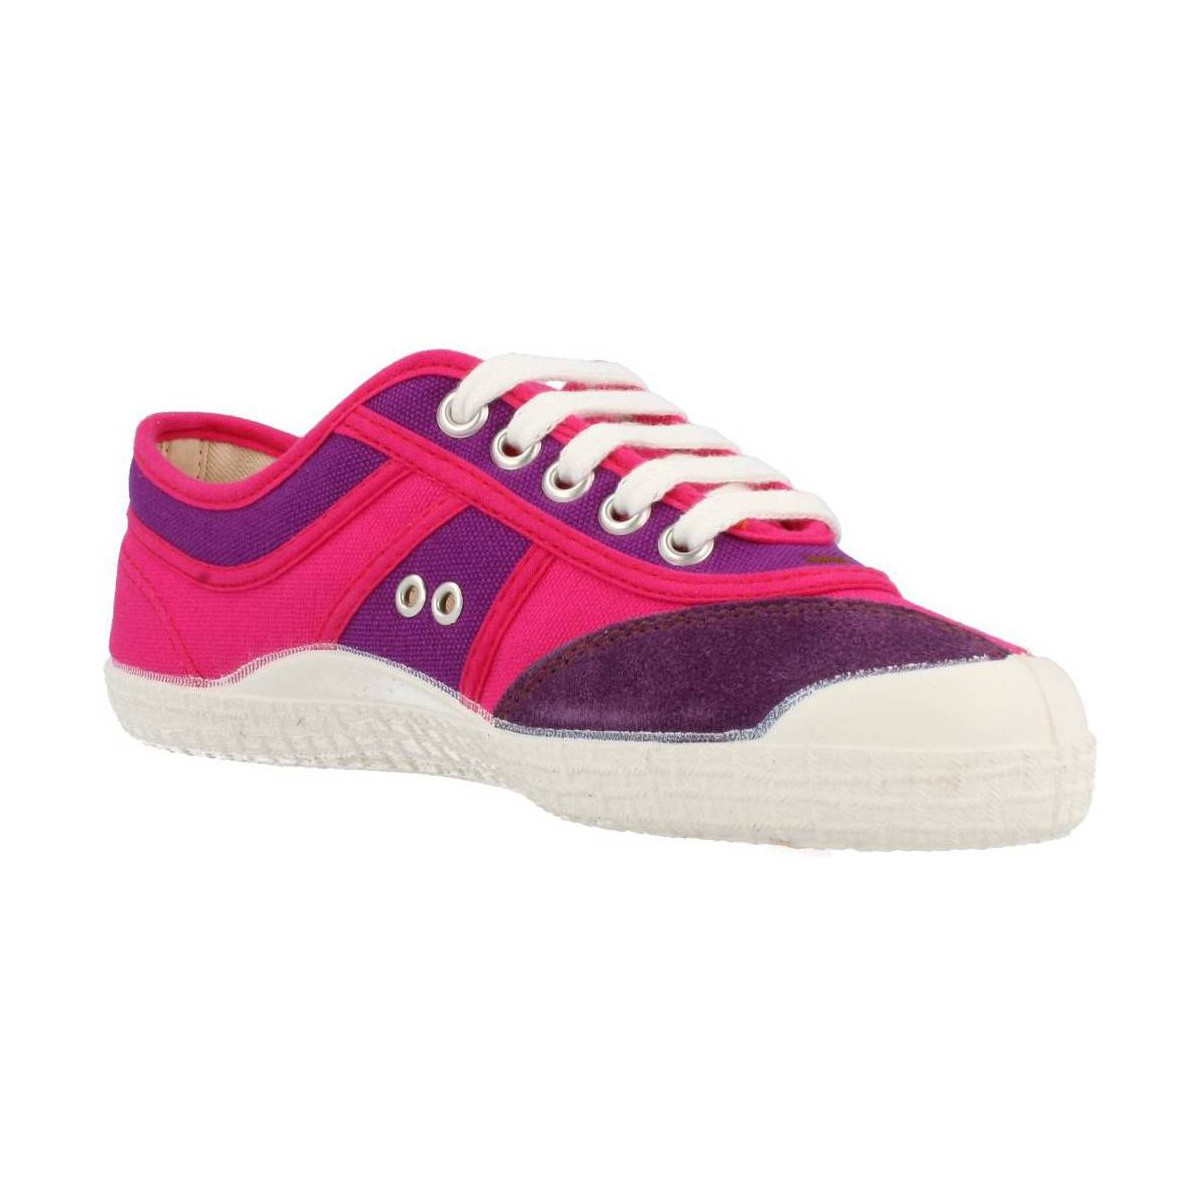 Kawasaki HOT SHOT Rosa - Schuhe Sneaker Low Damen 51,97 €